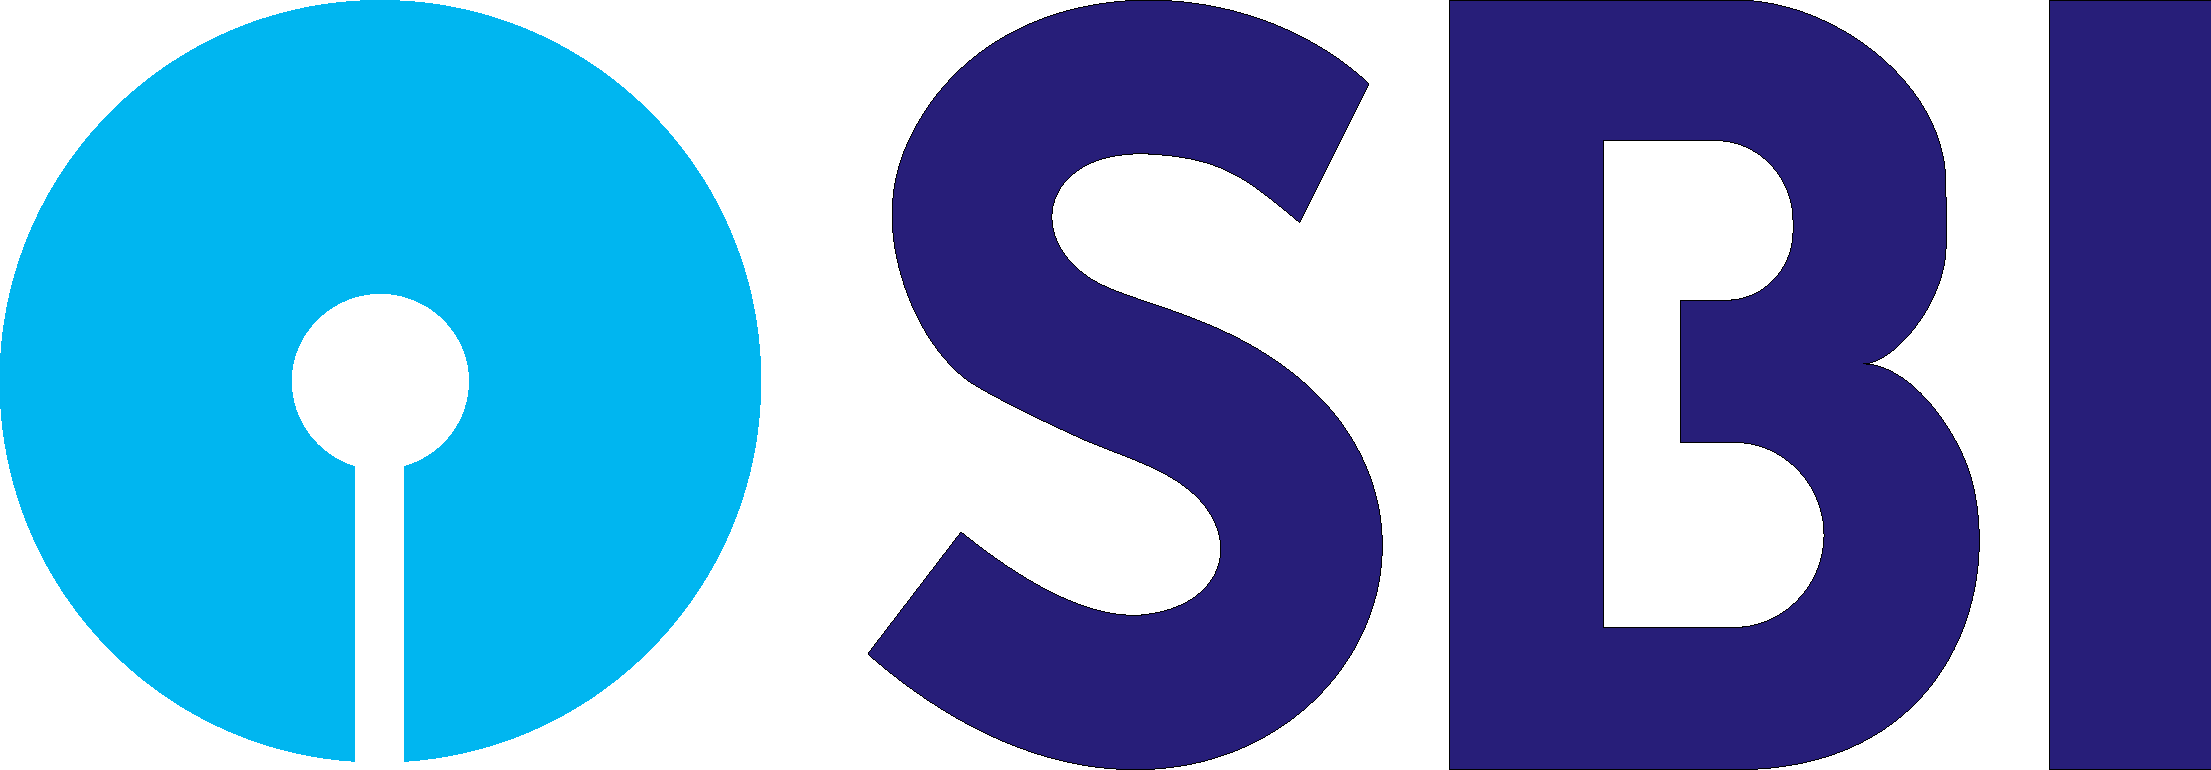 Icici logo clipart image transparent sbi logo [State Bank of India Group] Vector EPS Free Download, Logo ... image transparent